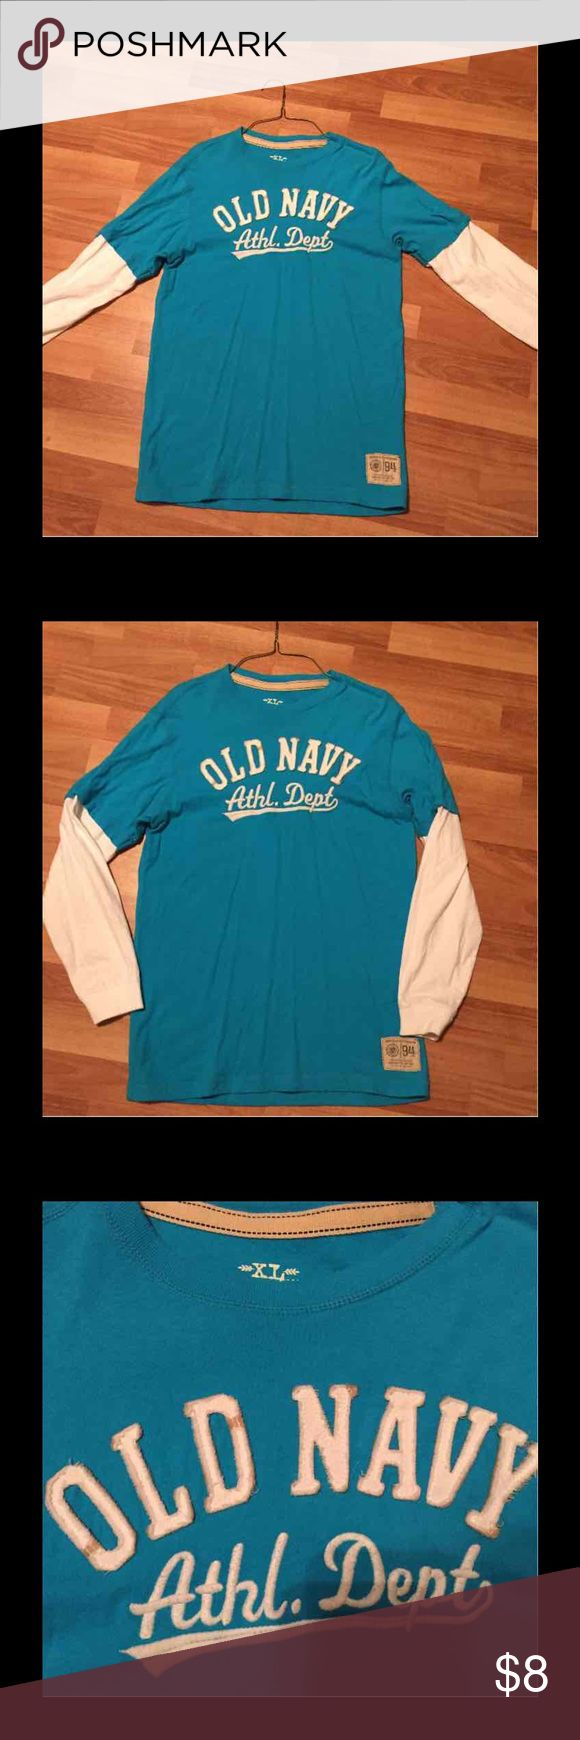 Old Navy long sleeve top Old Navy nice top for girls size XL. Good condition. Old Navy Shirts & Tops Tees - Long Sleeve